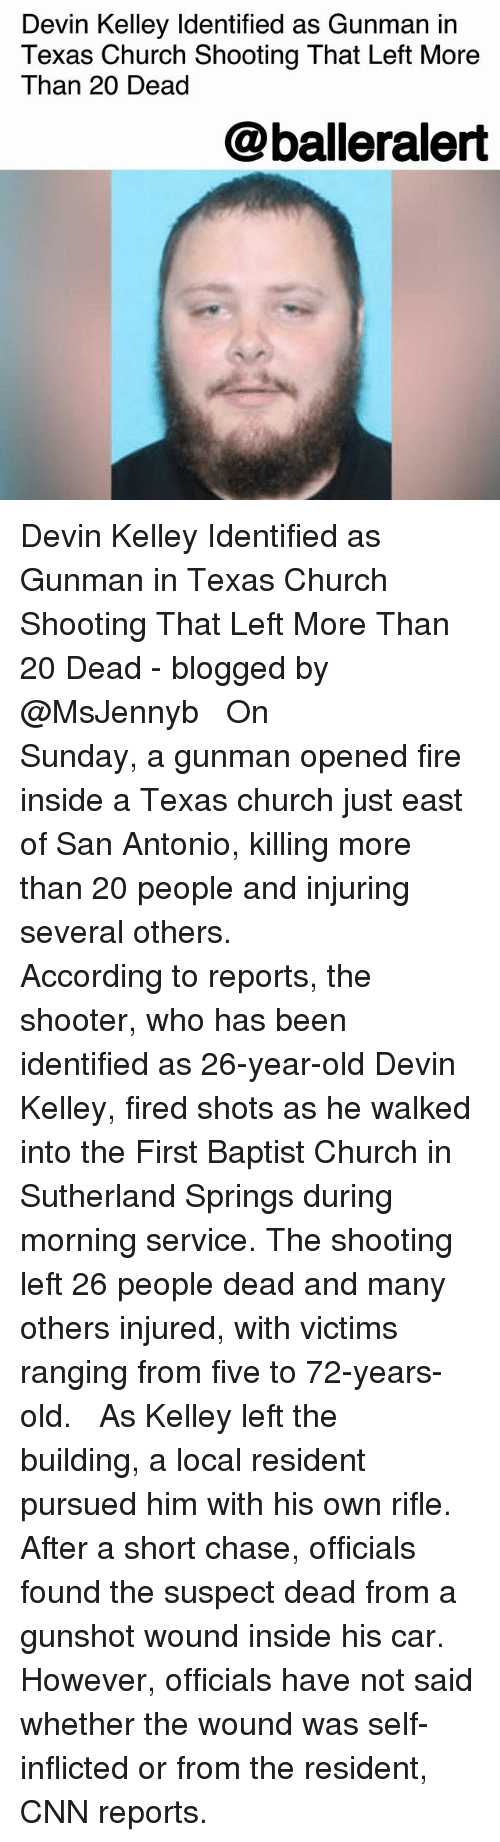 Kelley: Devin Kelley Identified as Gunman in  Texas Church Shooting That Left More  Than 20 Dead  @balleralert Devin Kelley Identified as Gunman in Texas Church Shooting That Left More Than 20 Dead - blogged by @MsJennyb ⠀⠀⠀⠀⠀⠀⠀ ⠀⠀⠀⠀⠀⠀⠀ On Sunday, a gunman opened fire inside a Texas church just east of San Antonio, killing more than 20 people and injuring several others. ⠀⠀⠀⠀⠀⠀⠀ ⠀⠀⠀⠀⠀⠀⠀ According to reports, the shooter, who has been identified as 26-year-old Devin Kelley, fired shots as he walked into the First Baptist Church in Sutherland Springs during morning service. The shooting left 26 people dead and many others injured, with victims ranging from five to 72-years-old. ⠀⠀⠀⠀⠀⠀⠀ ⠀⠀⠀⠀⠀⠀⠀ As Kelley left the building, a local resident pursued him with his own rifle. After a short chase, officials found the suspect dead from a gunshot wound inside his car. However, officials have not said whether the wound was self-inflicted or from the resident, CNN reports.